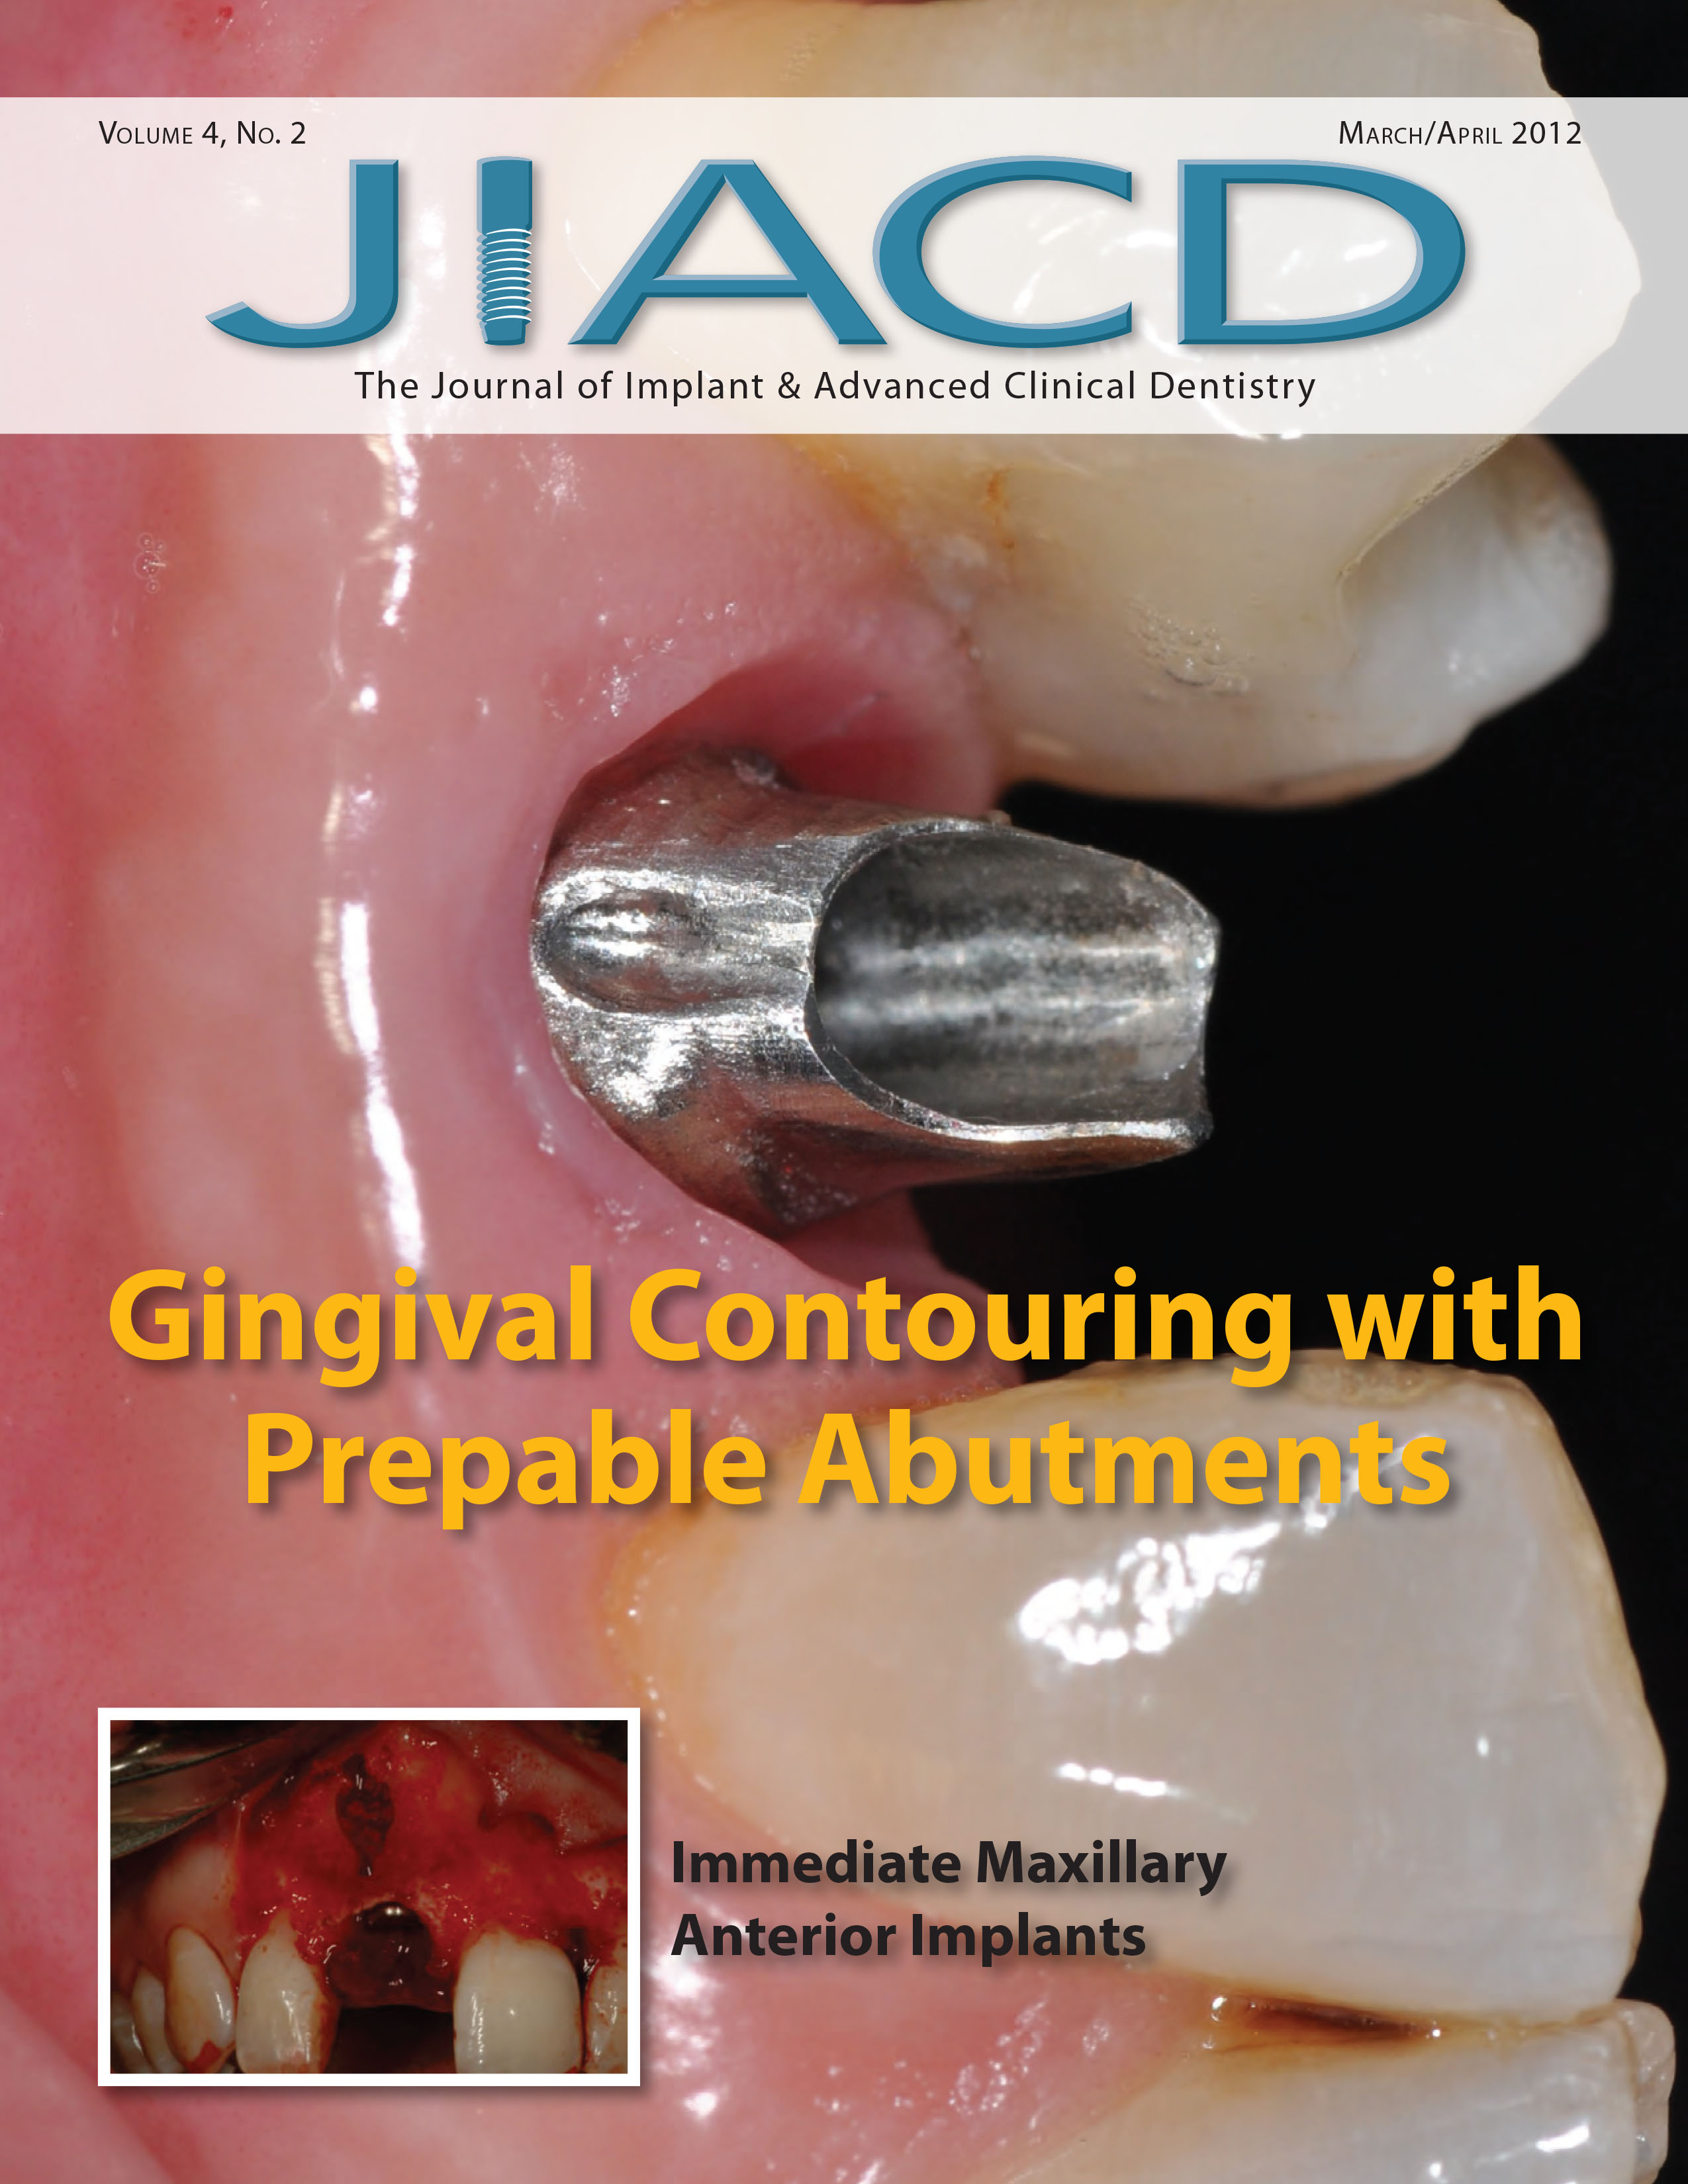 Gingival Contouring with Prepable Abutments